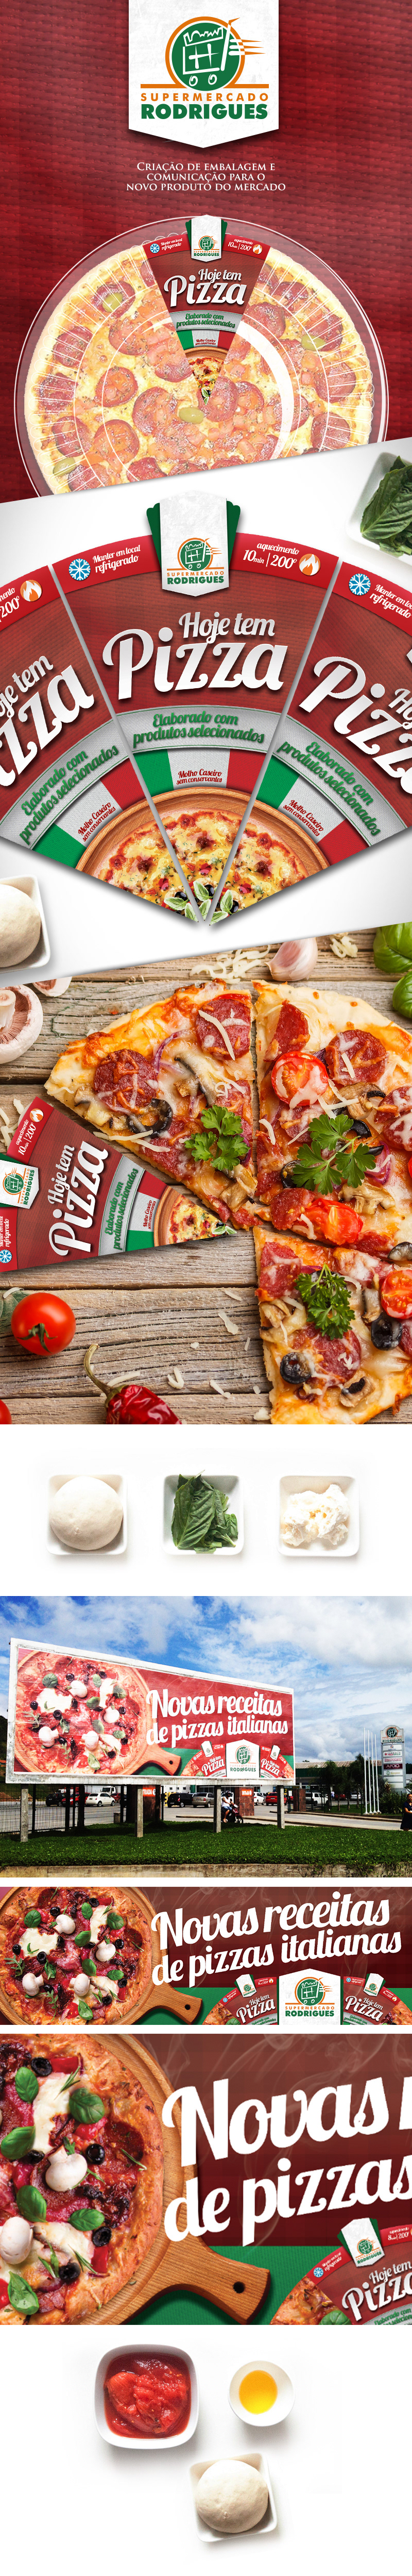 Pizza supermercado Rodrigues luckcomm embalagem Outdoor Pack red Italy